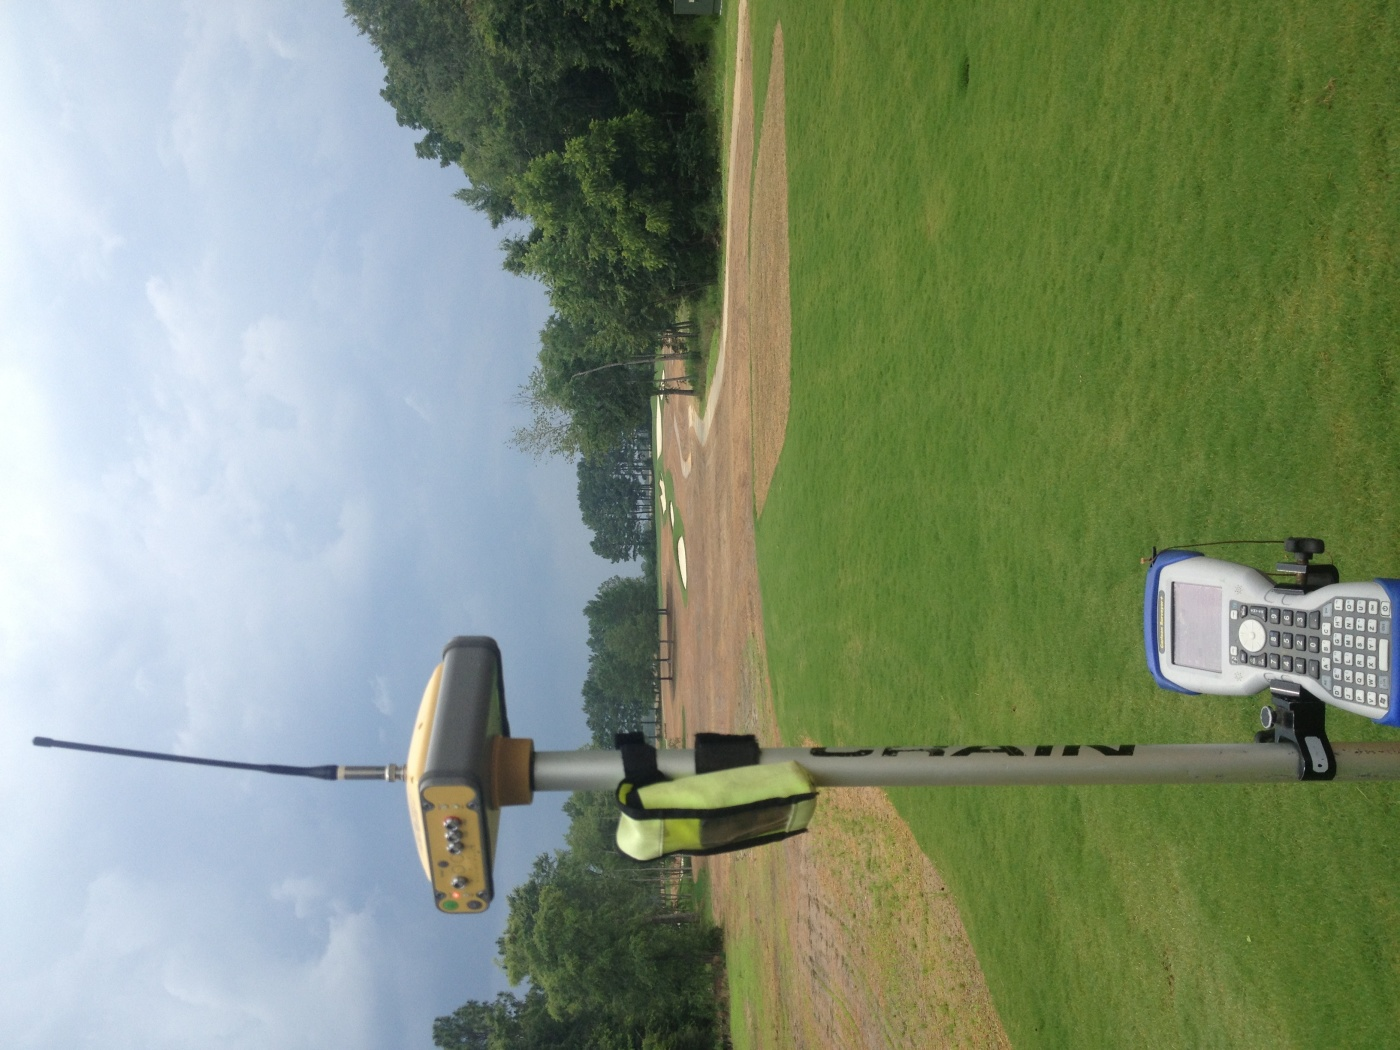 Location work on a new golf course in SE Georgia